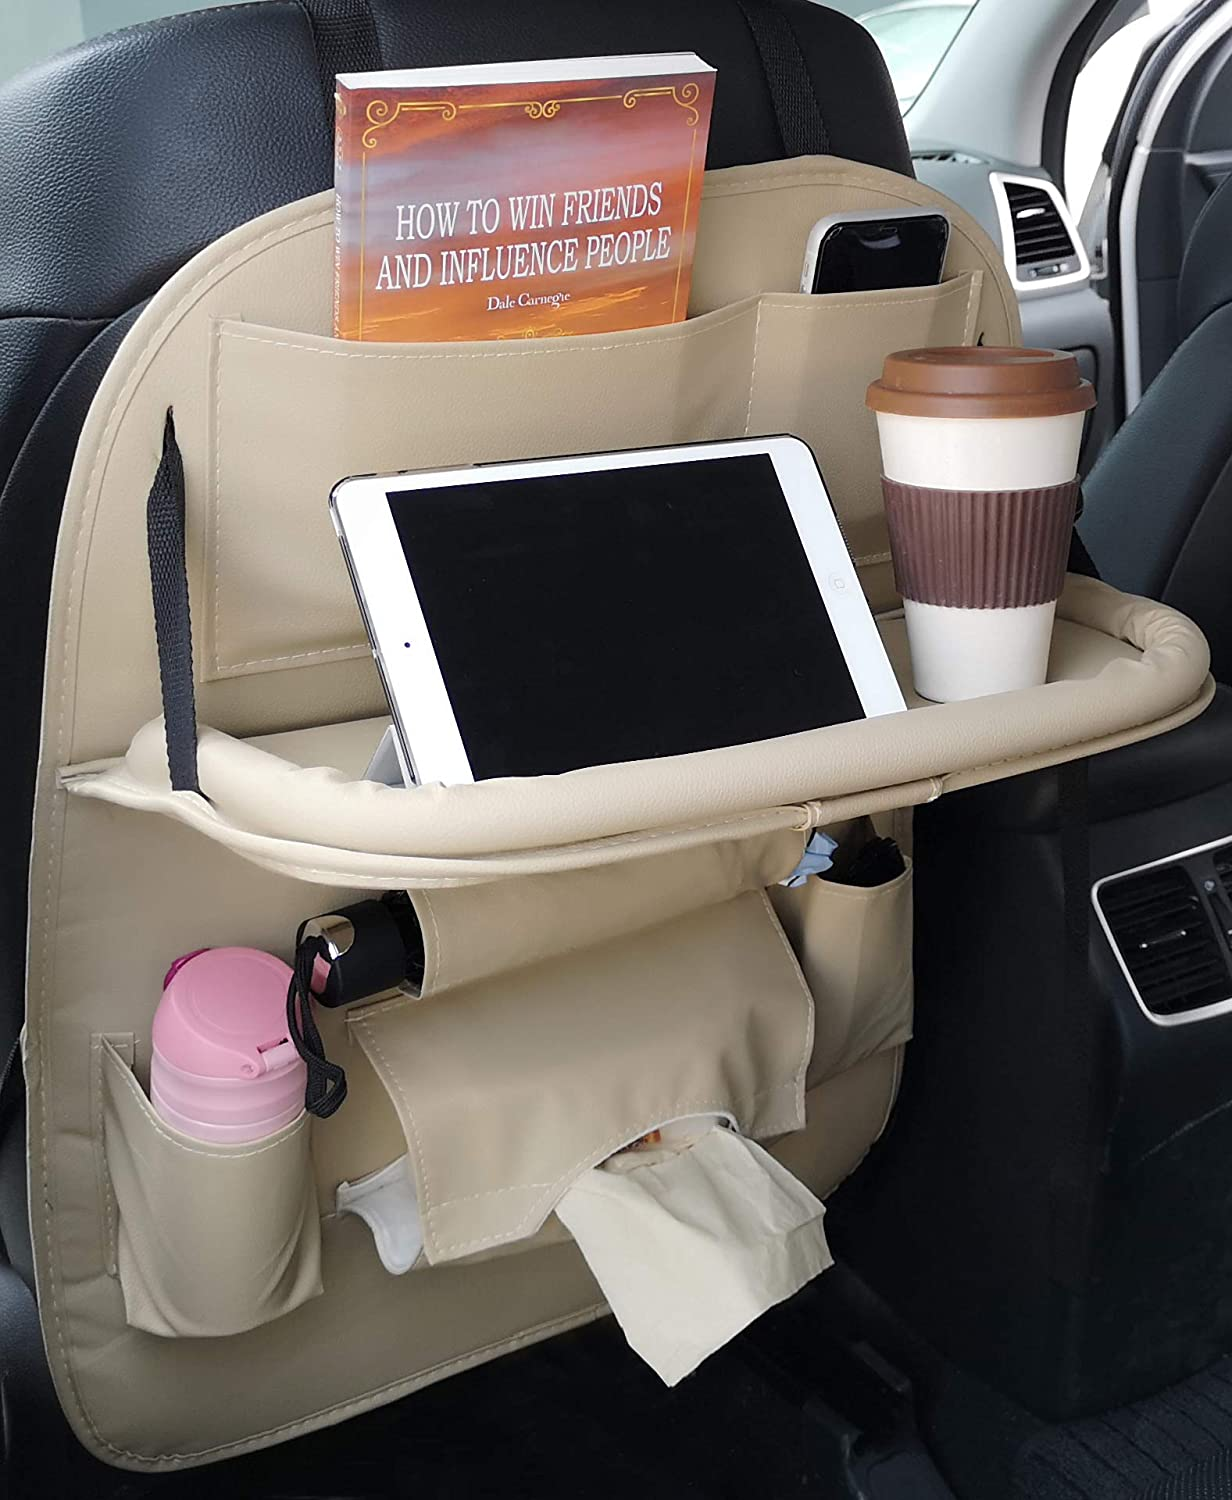 Patas Lague Car Seat Organizer with Foldable Table Tray Travel Accessories Organizer Pu Leather Back Seat Protector with Cup Holder One Pack,Black